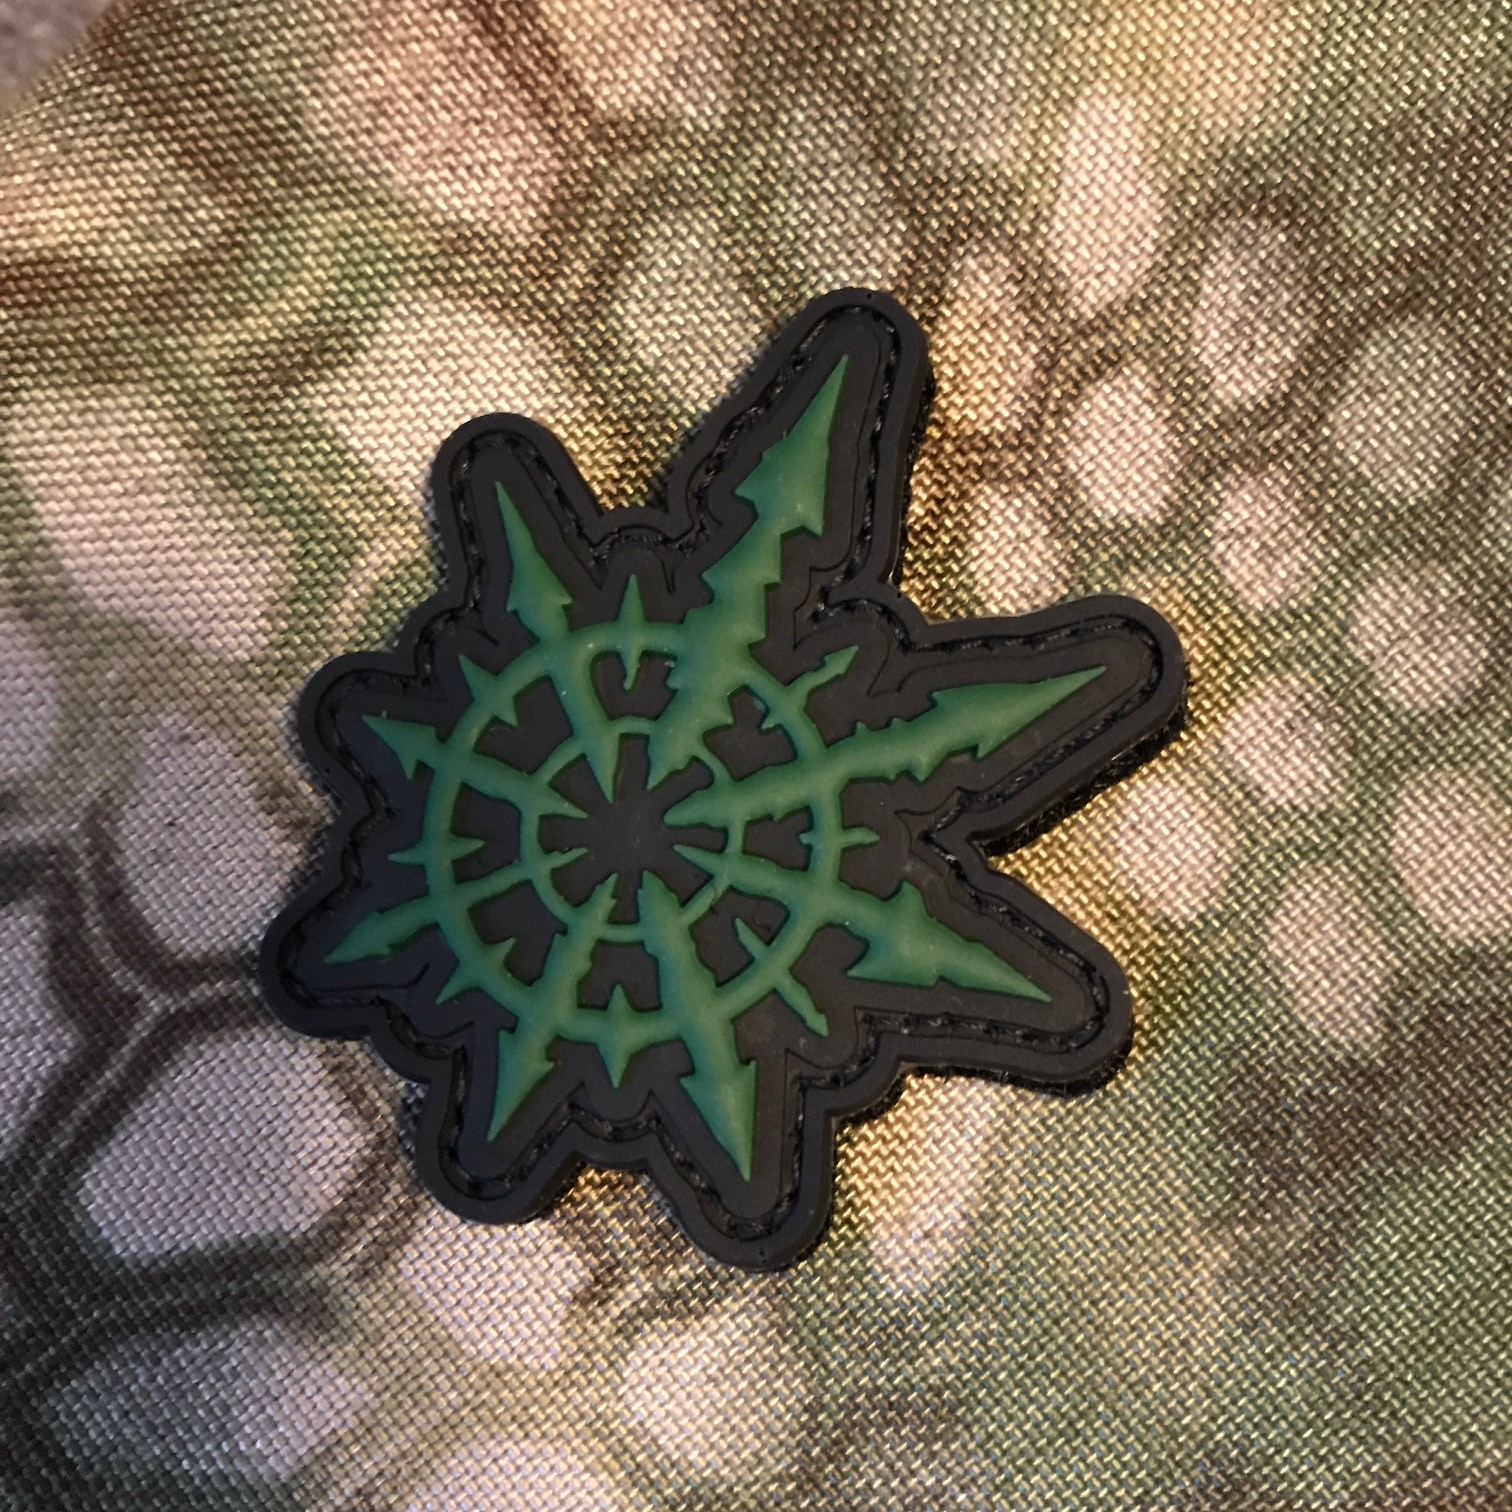 Chaos Symbol Pvc Patch Tacticool Imaging Online Store Powered By